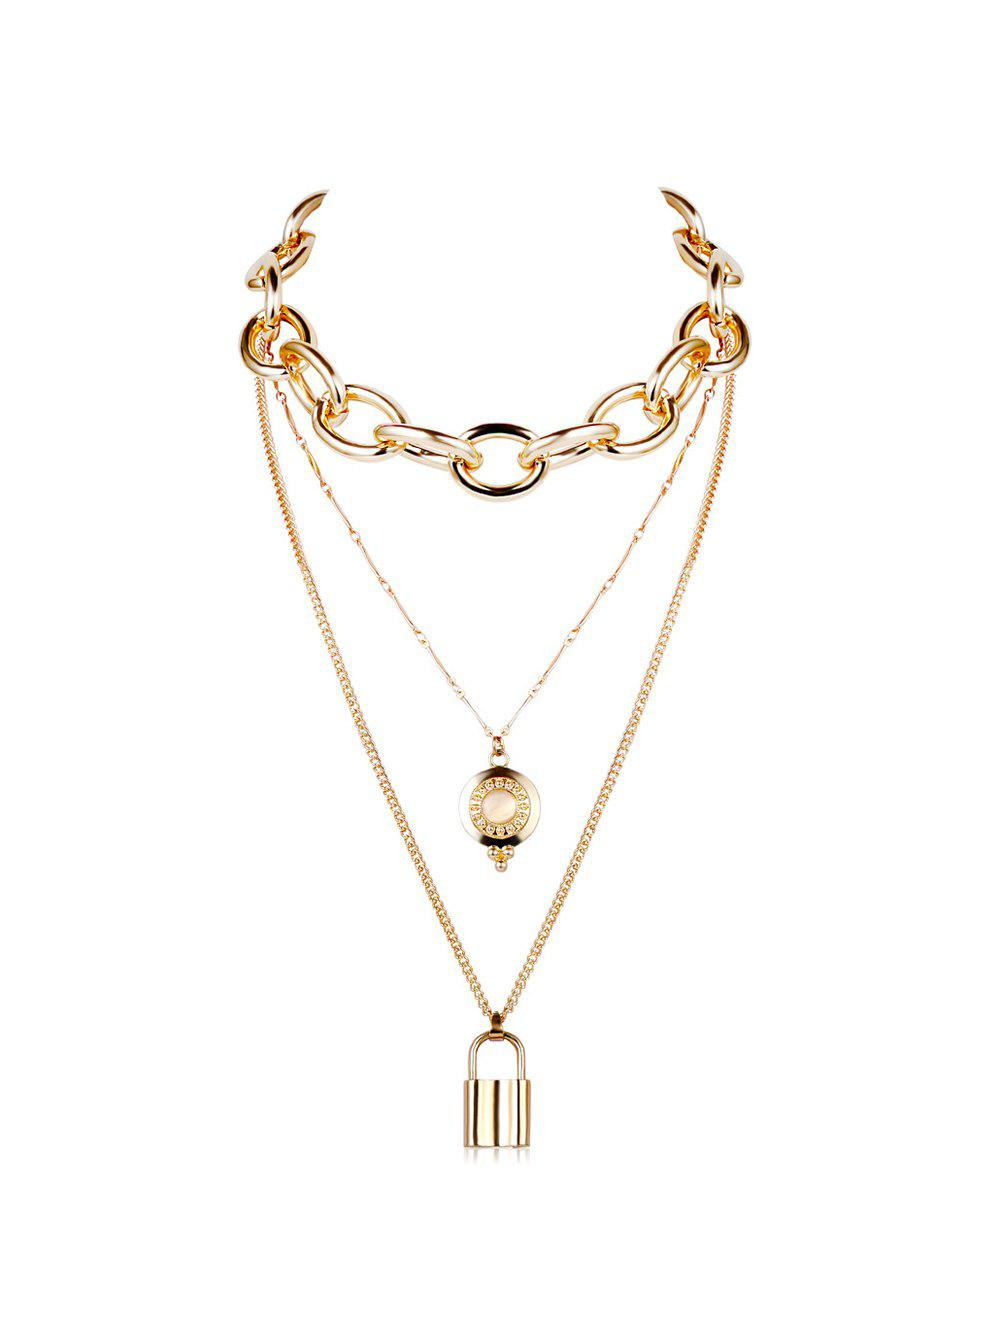 Punk Key Lock Pendant Multilayered Chain Necklace - GOLD